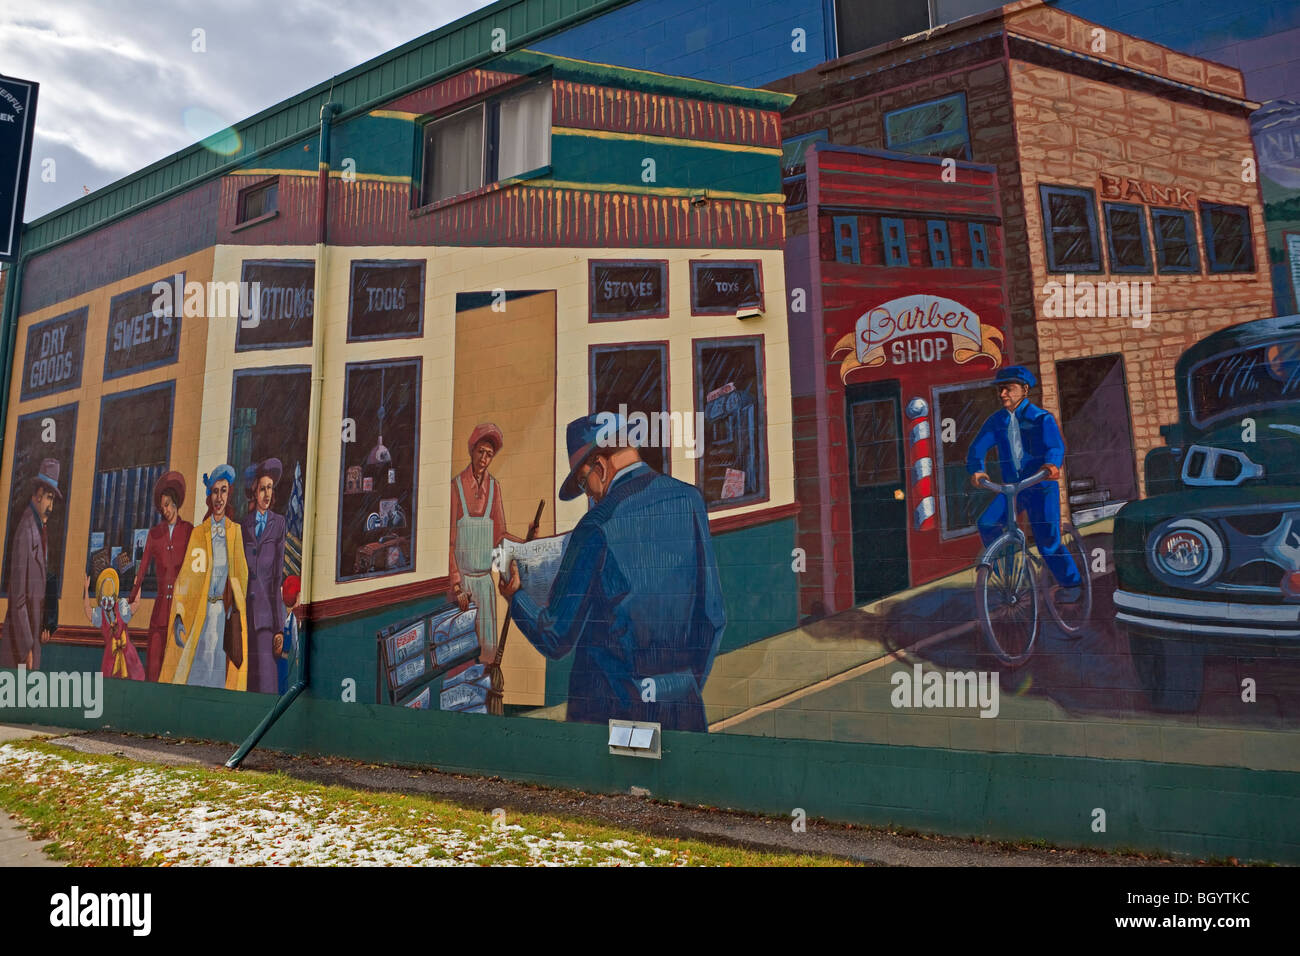 Wall mural on the side of a building in the town of Pincher Creek, Alberta, Canada. - Stock Image